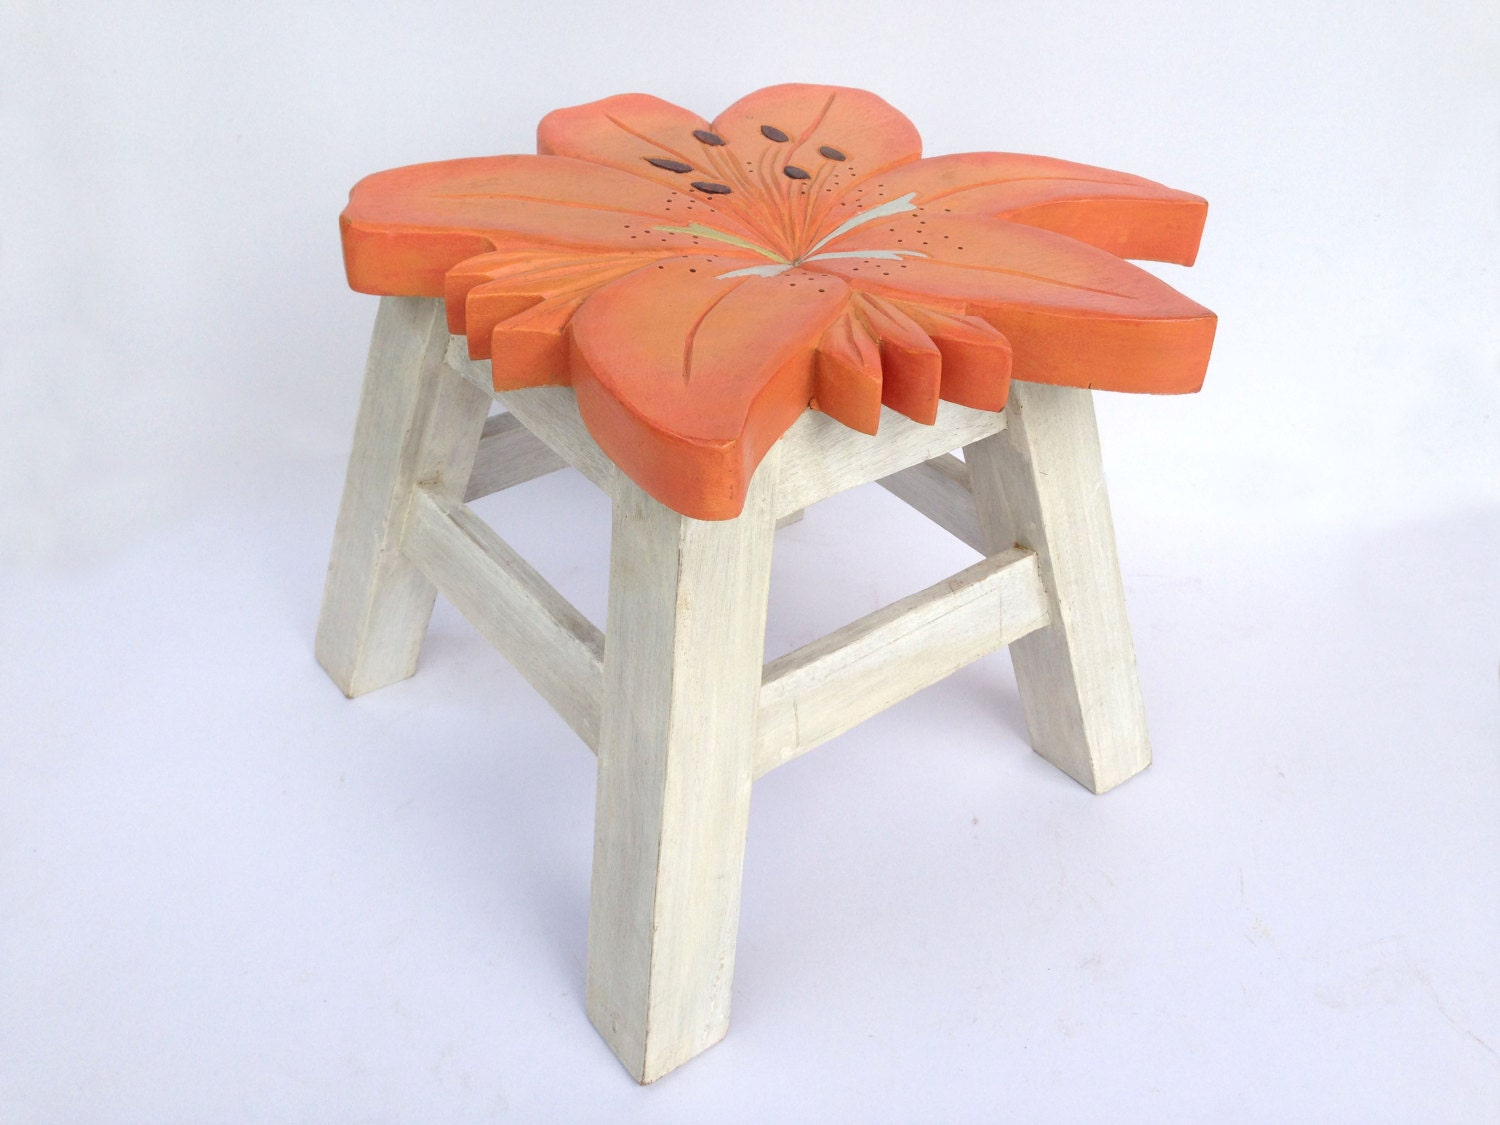 Flower Stool Kids Stool Sitting Stool Hand Painted Wooden